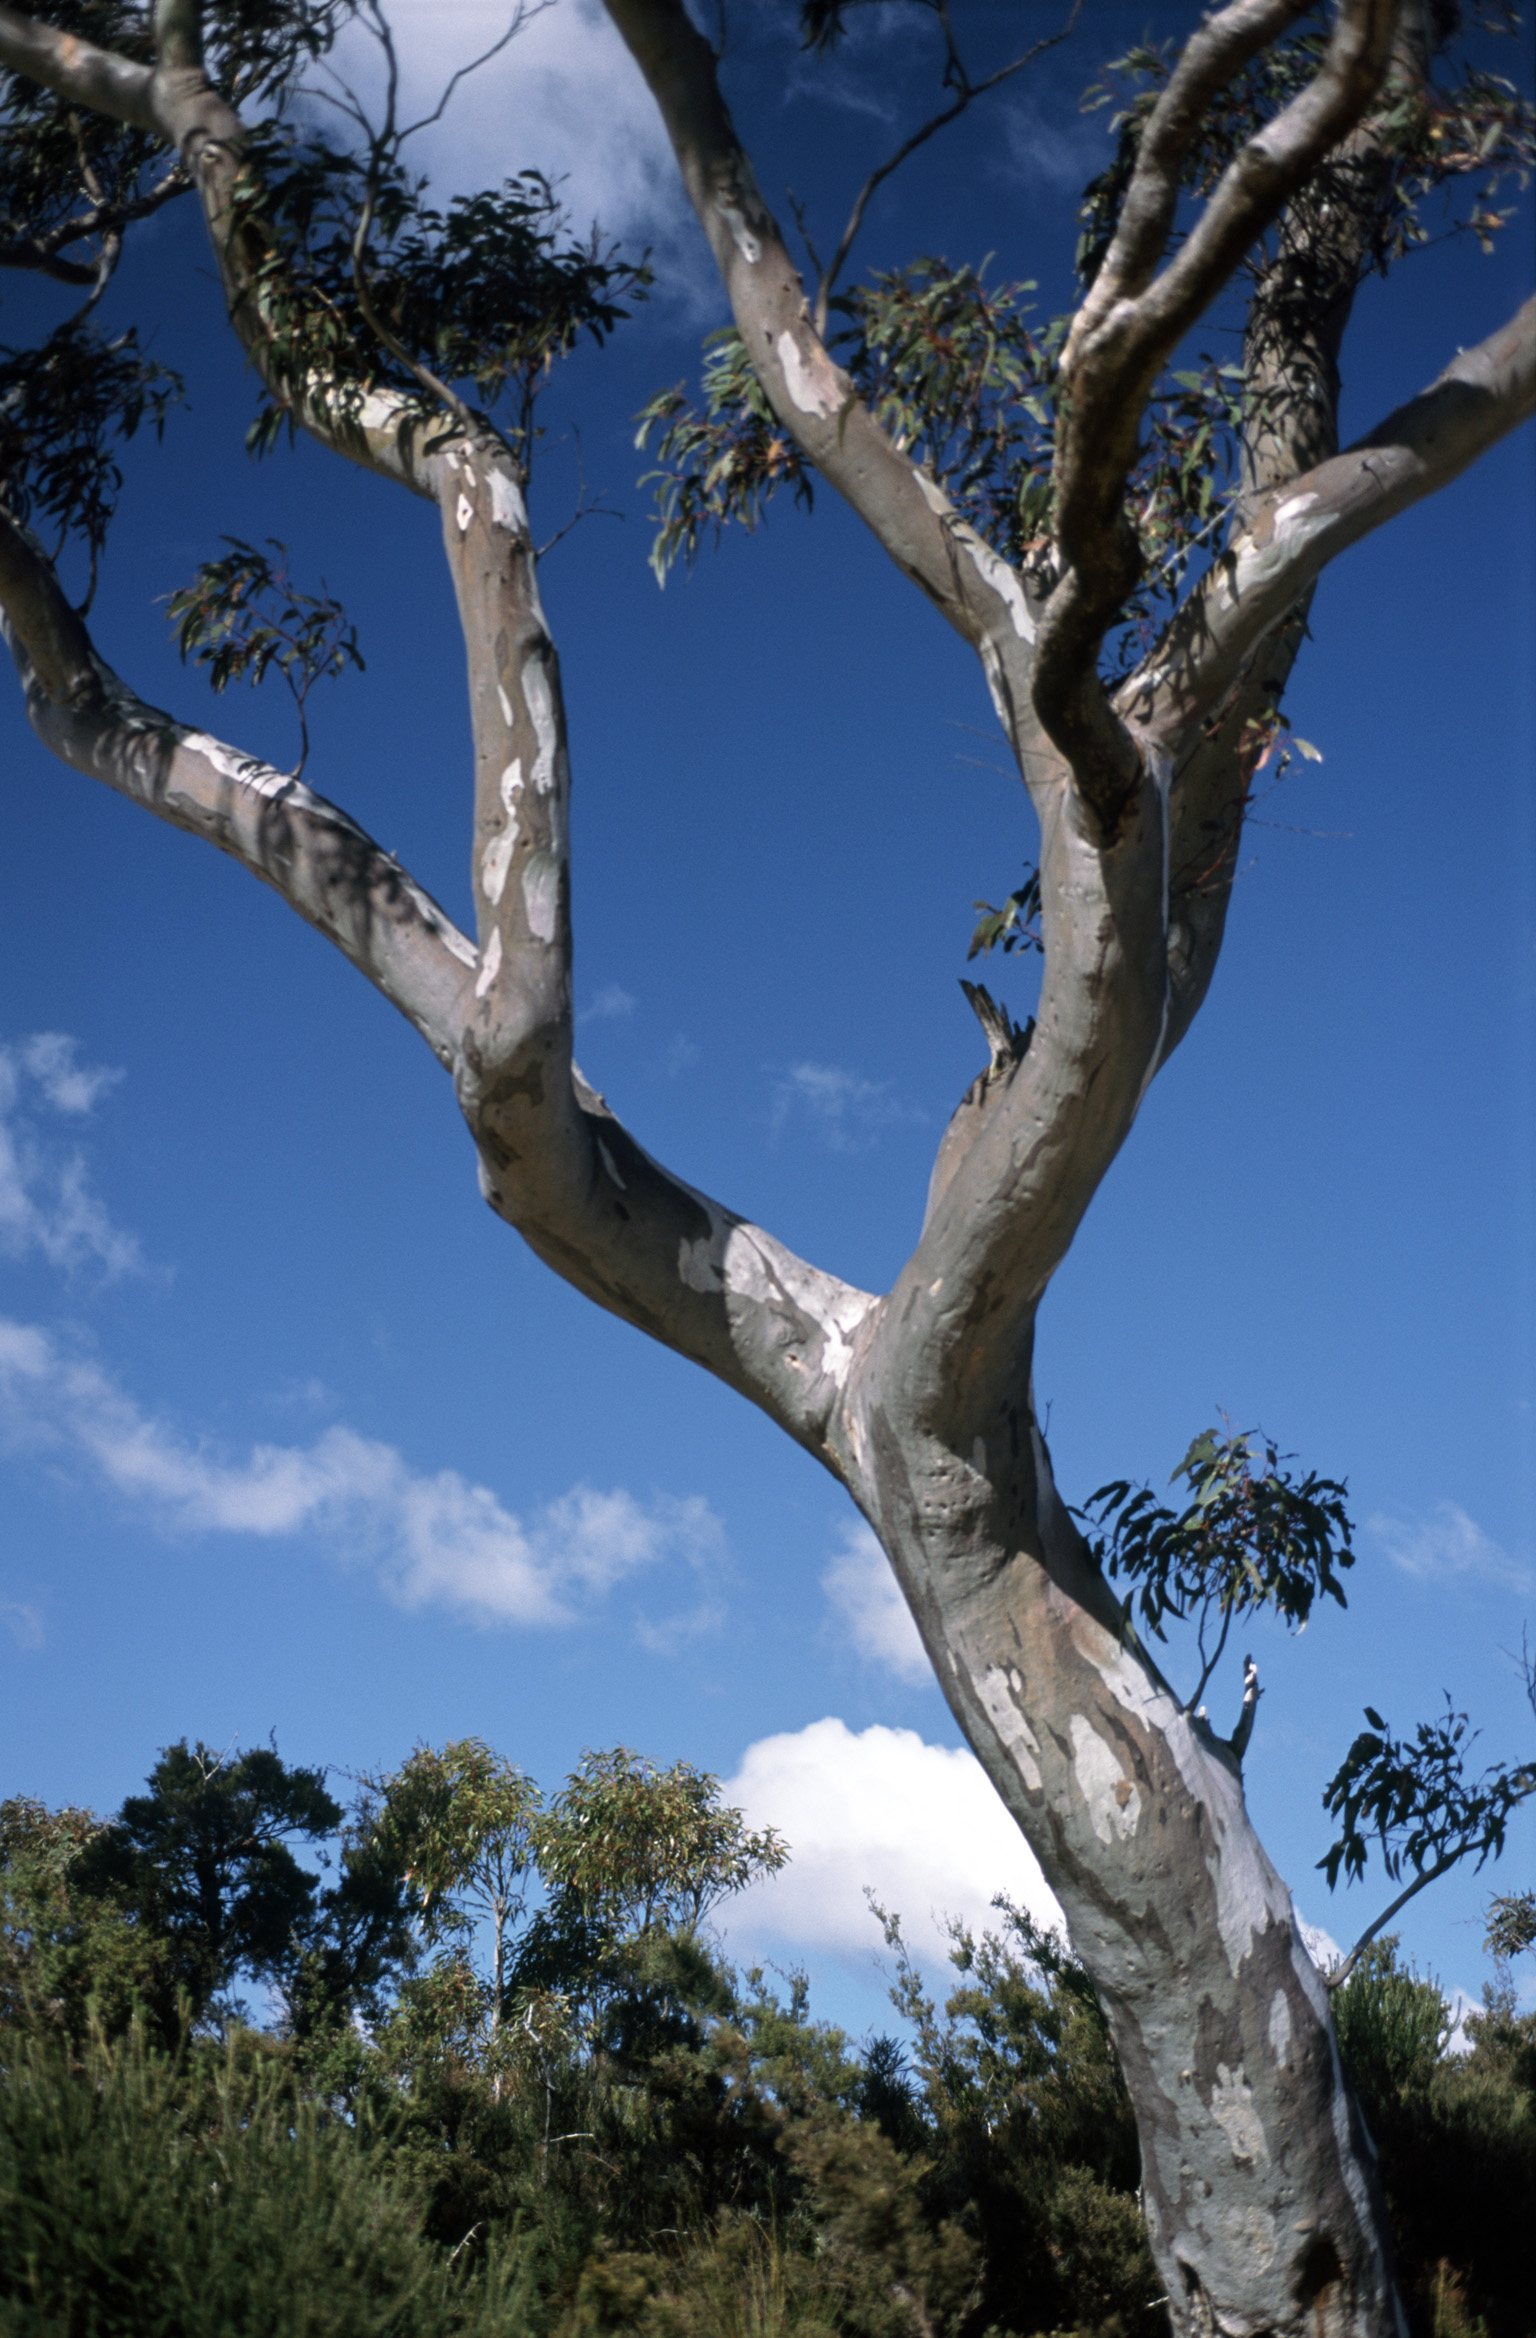 Detail of a branch on a gum tree in the Australian outback against a blue sky